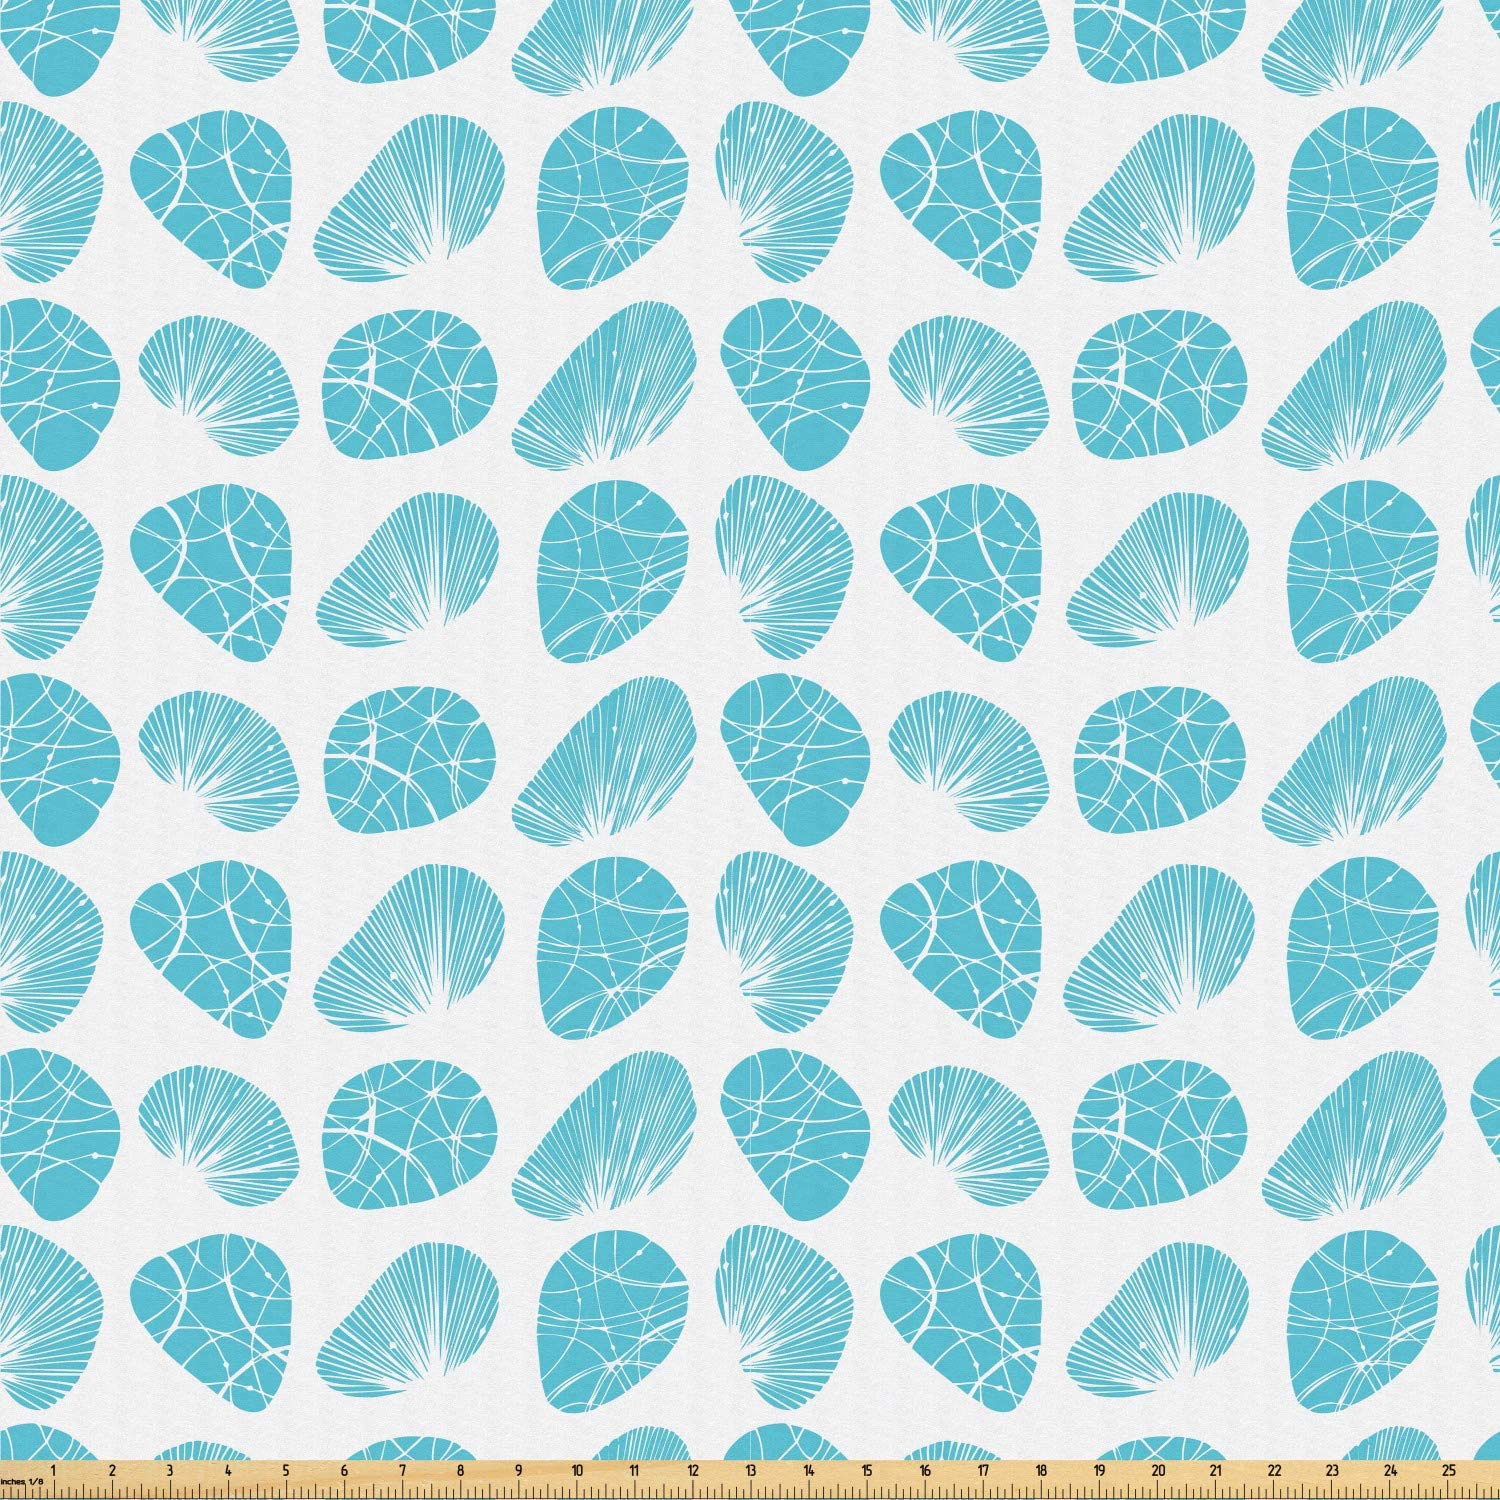 Ambesonne Shells Fabric by The Yard, Geometric Pattern of Seashell Sea Stone Scallop Sunray Venus and Cockle, Microfiber Fabric for Arts and Crafts Textiles & Decor, 1 Yard, Blue and White